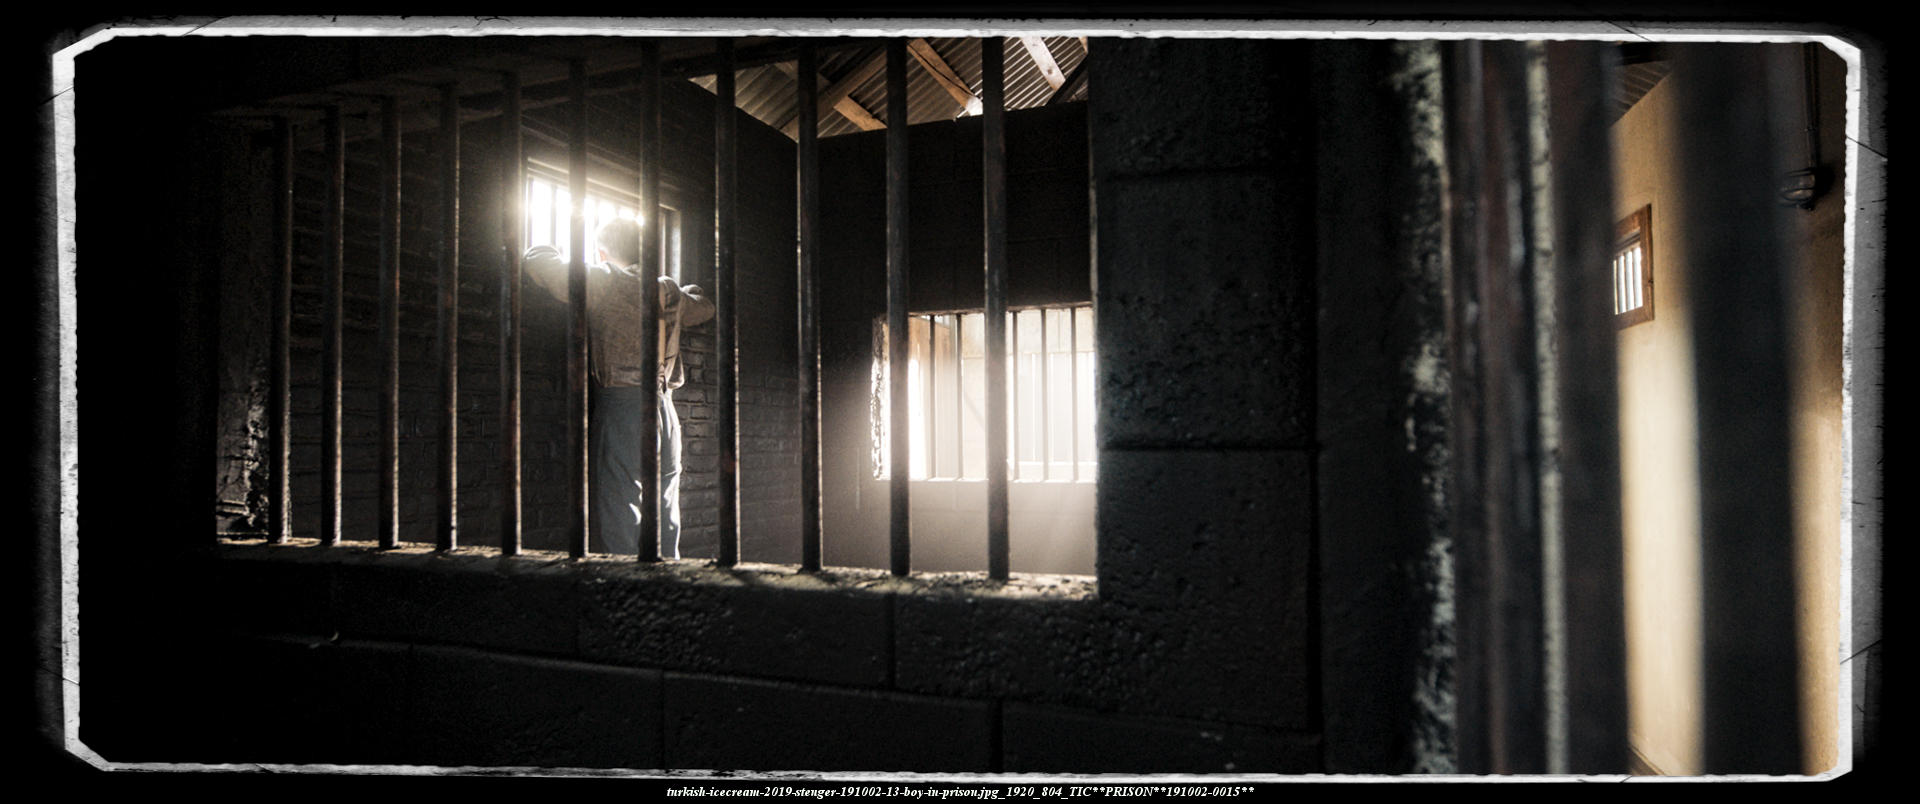 turkish-ICECREA;-James Farley looking out of his prison cell through bars-wide shot